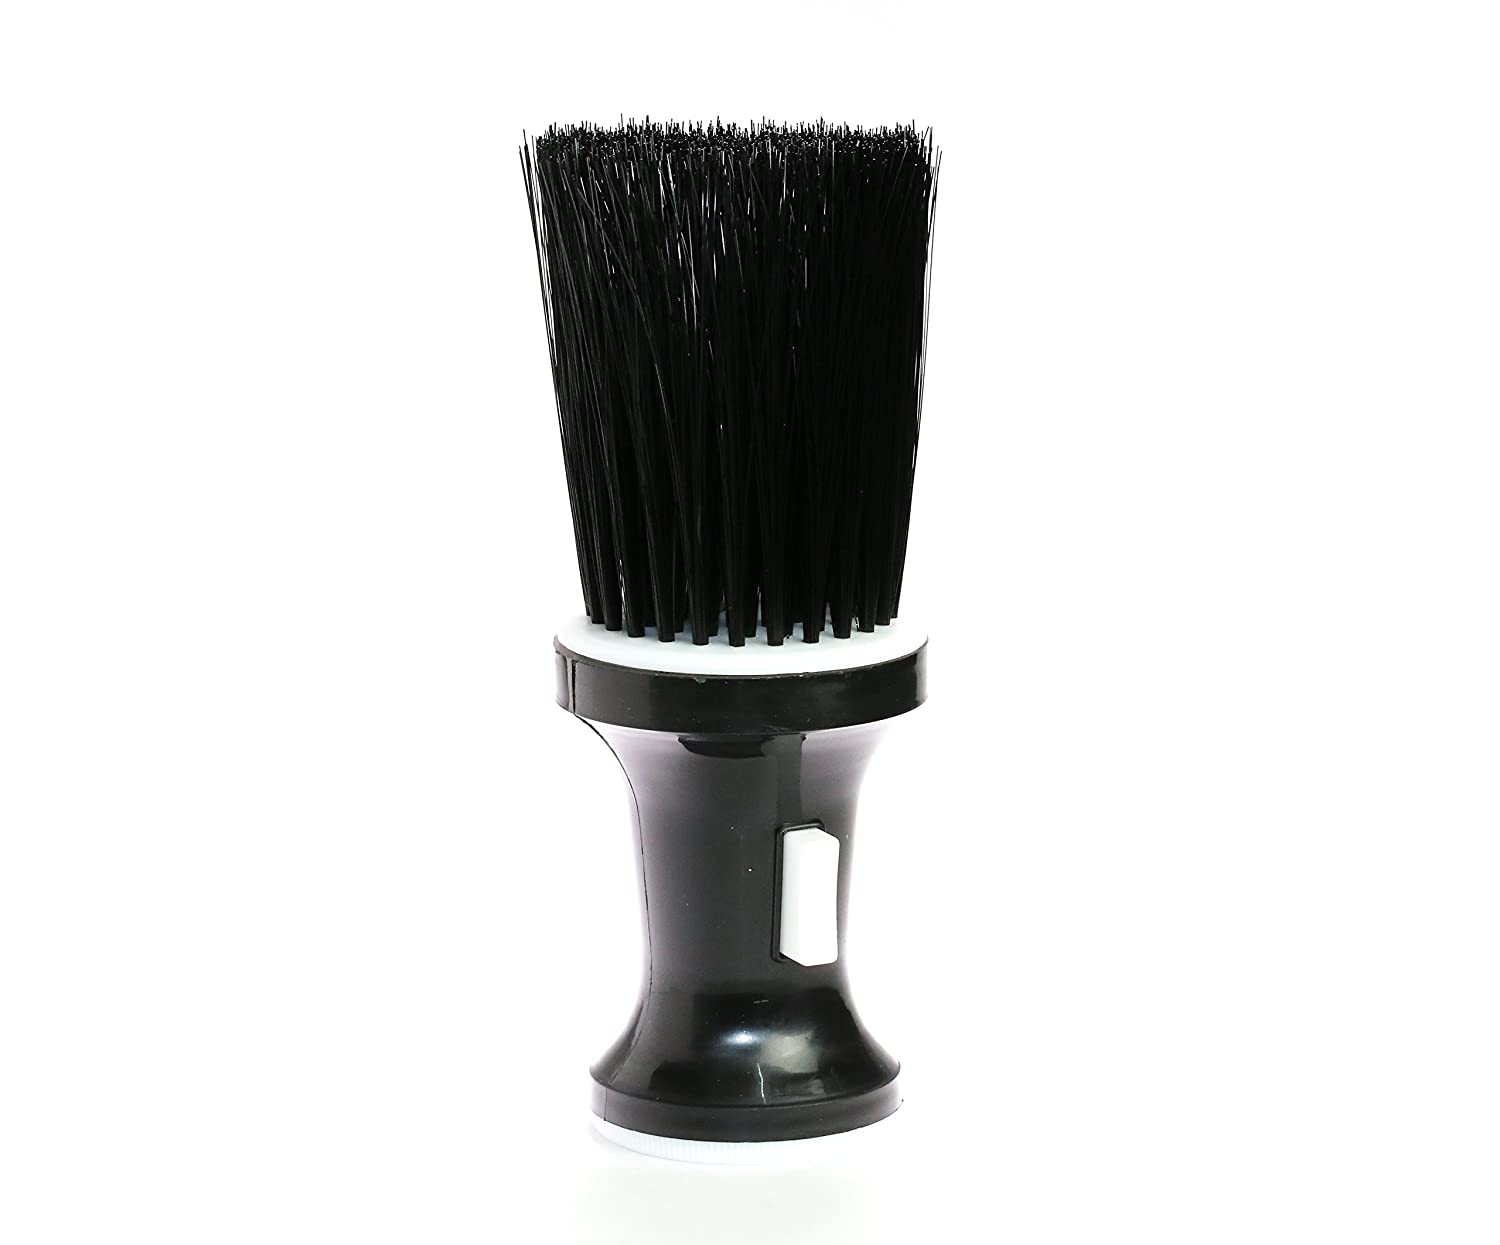 NEW DESIGN BARBER SALON NECK DUSTING BRUSH WITH TALCUM DISPENSER PREMIUM BUILD Talcum Neck Brush